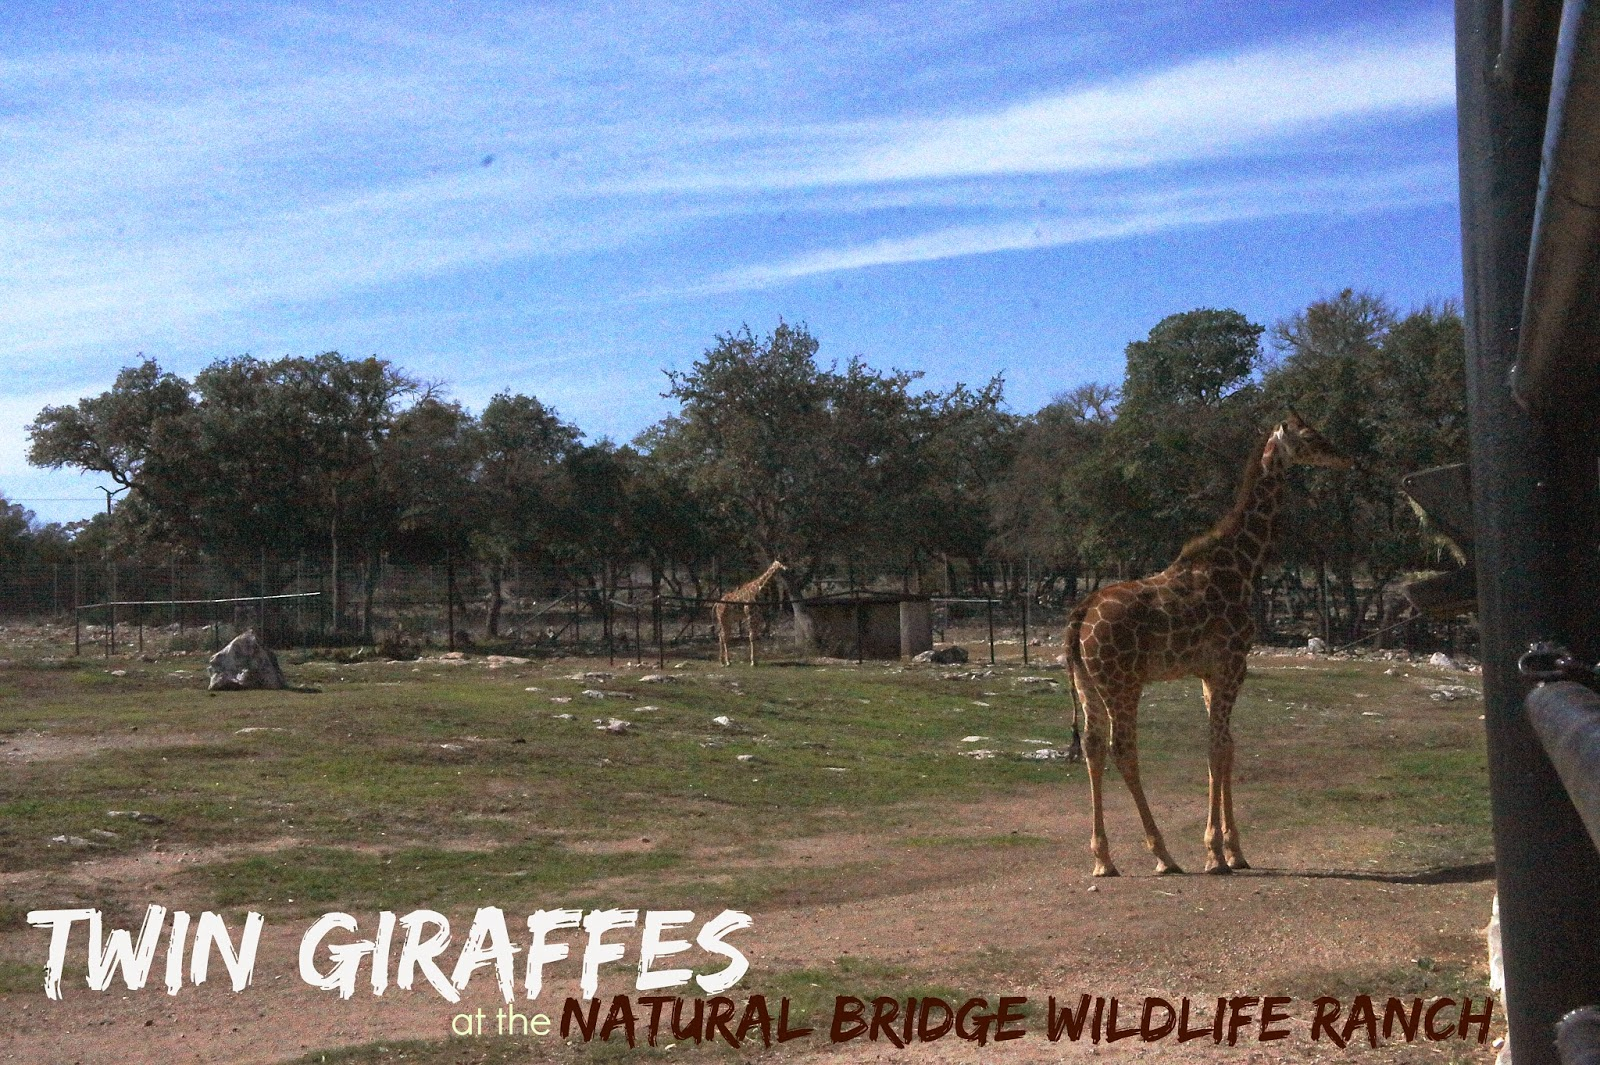 Only living twin giraffes in the US at the Natural Bridge Wildlife Ranch in San Antonio, Texas